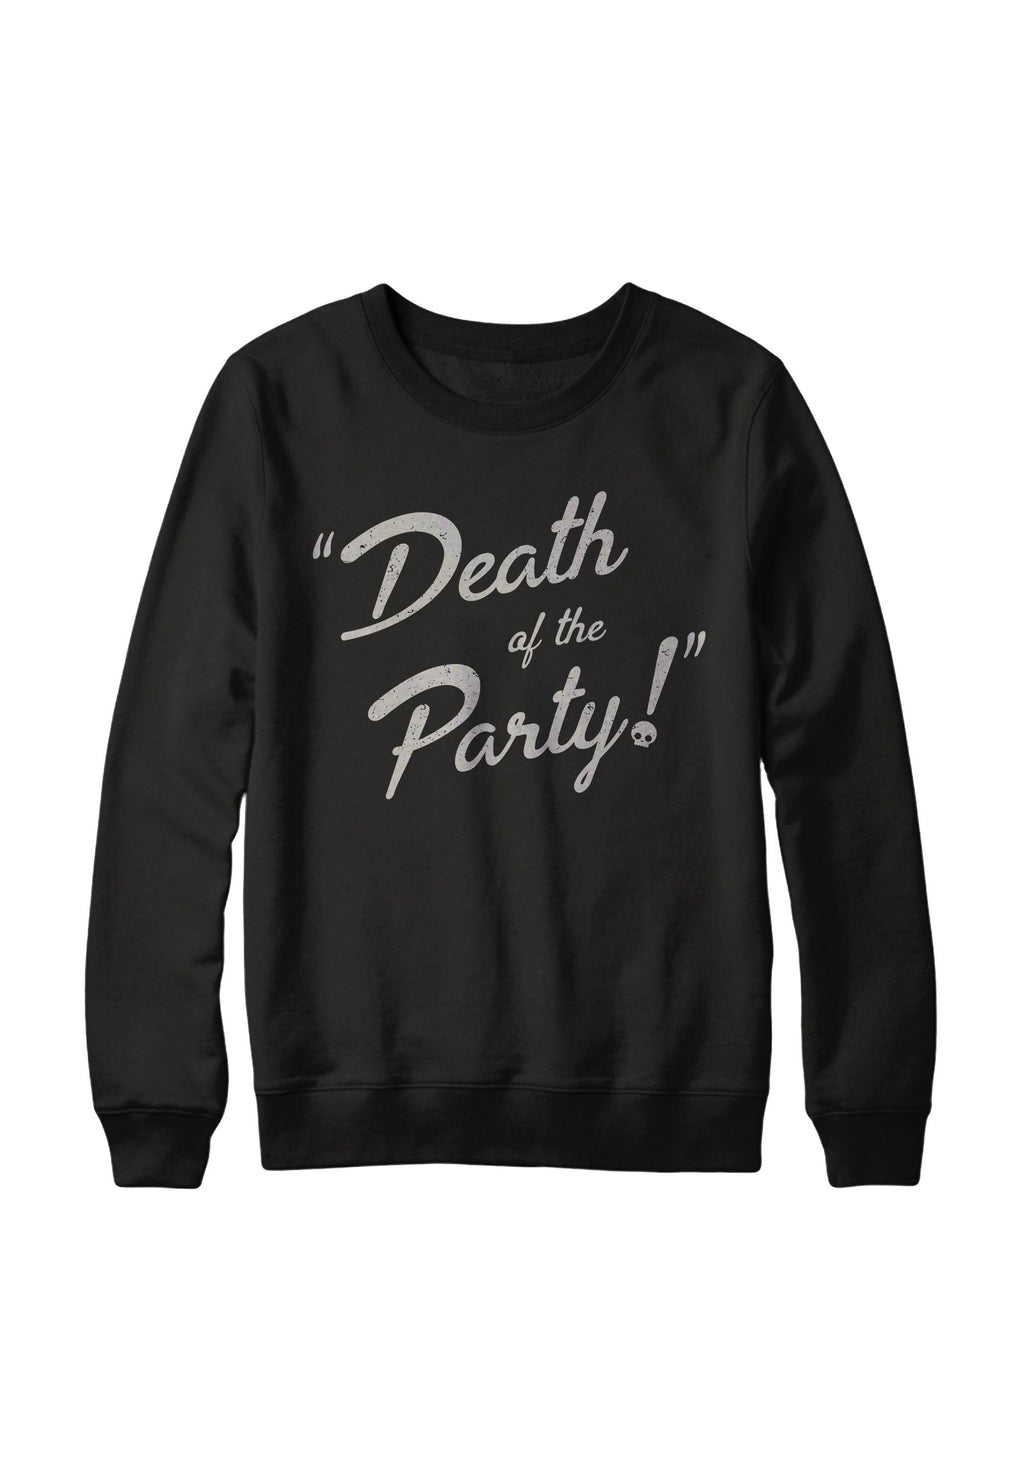 Death of the Party Sweatshirt / womens graphic sweatshirts funny / goth witch witchy clothing / mystical ghoul ghost halloween sweater